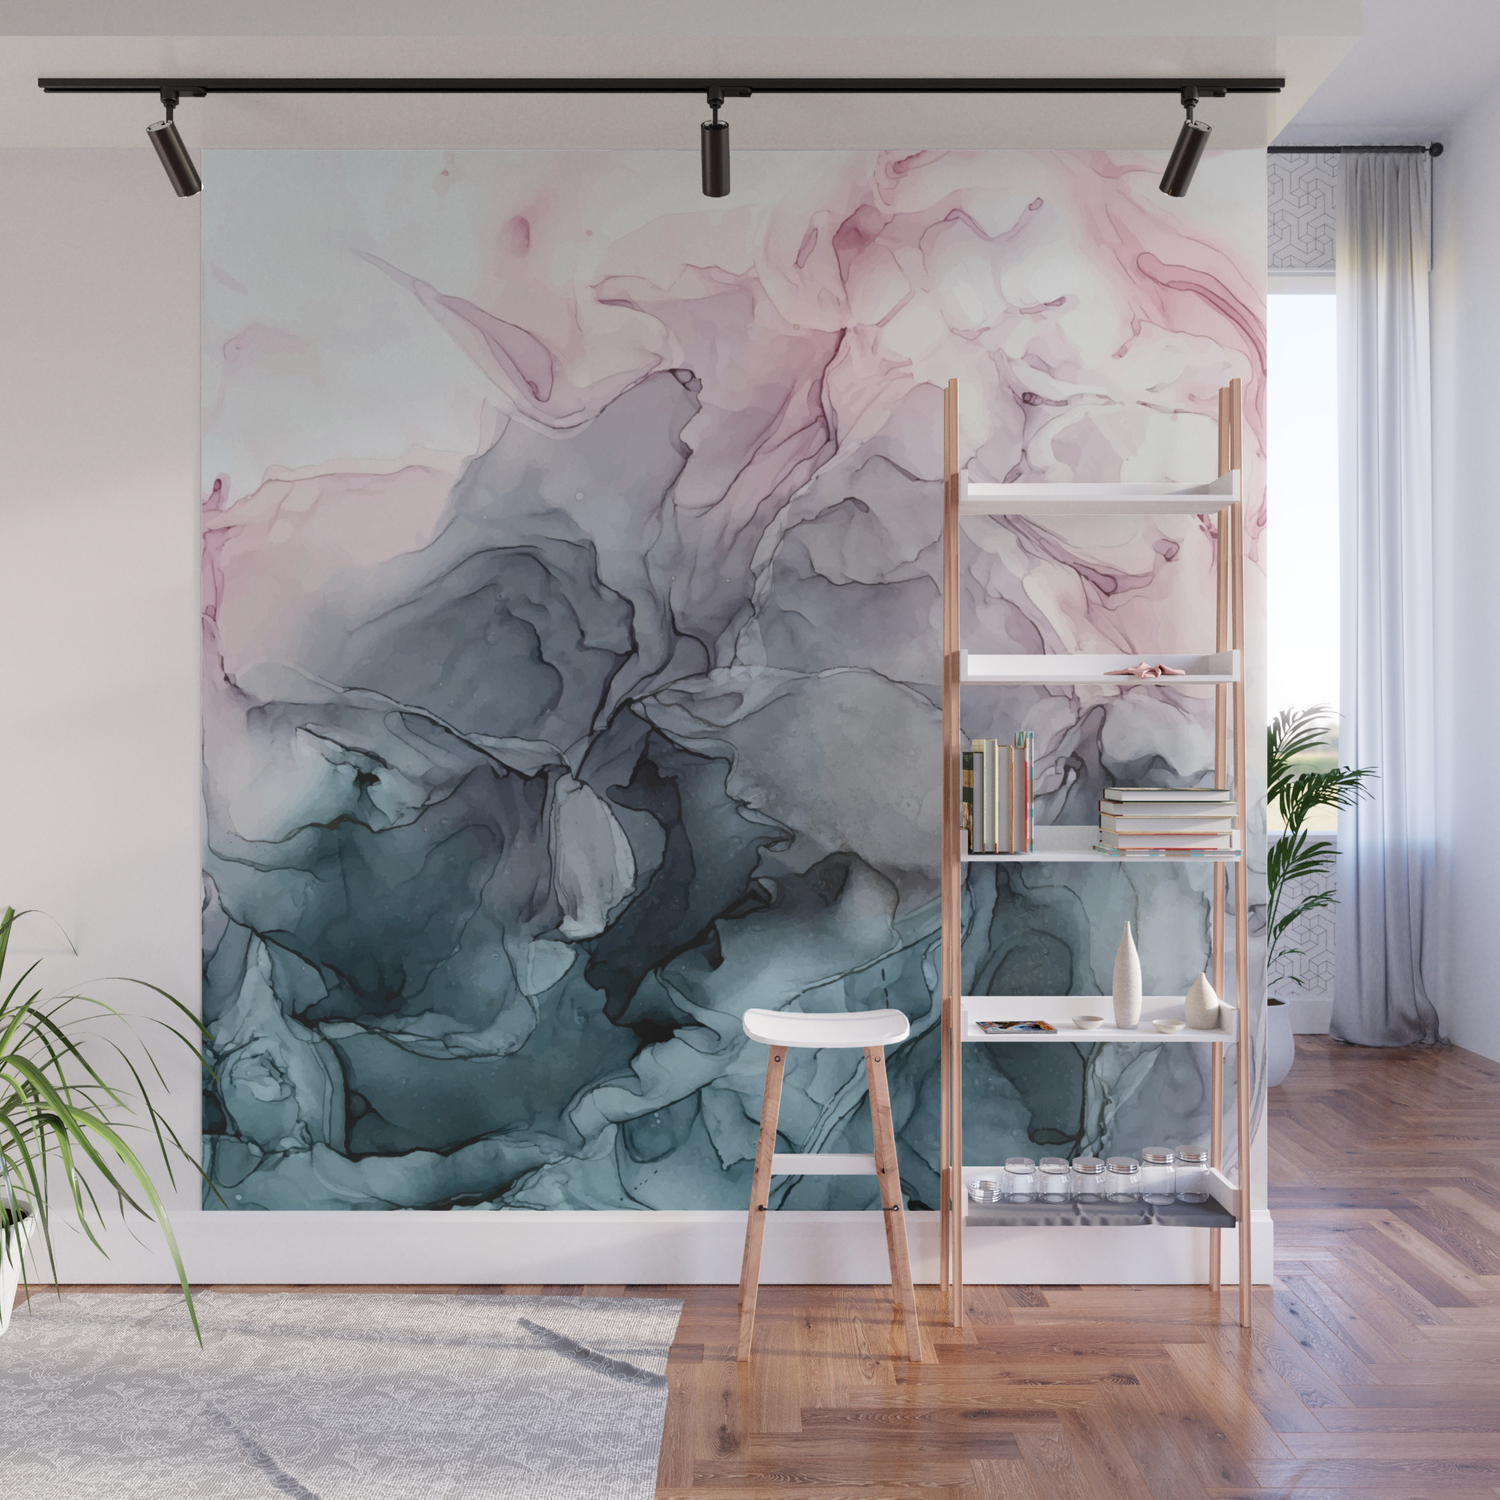 Blush And Payne S Grey Flowing Abstract Painting Wall Mural